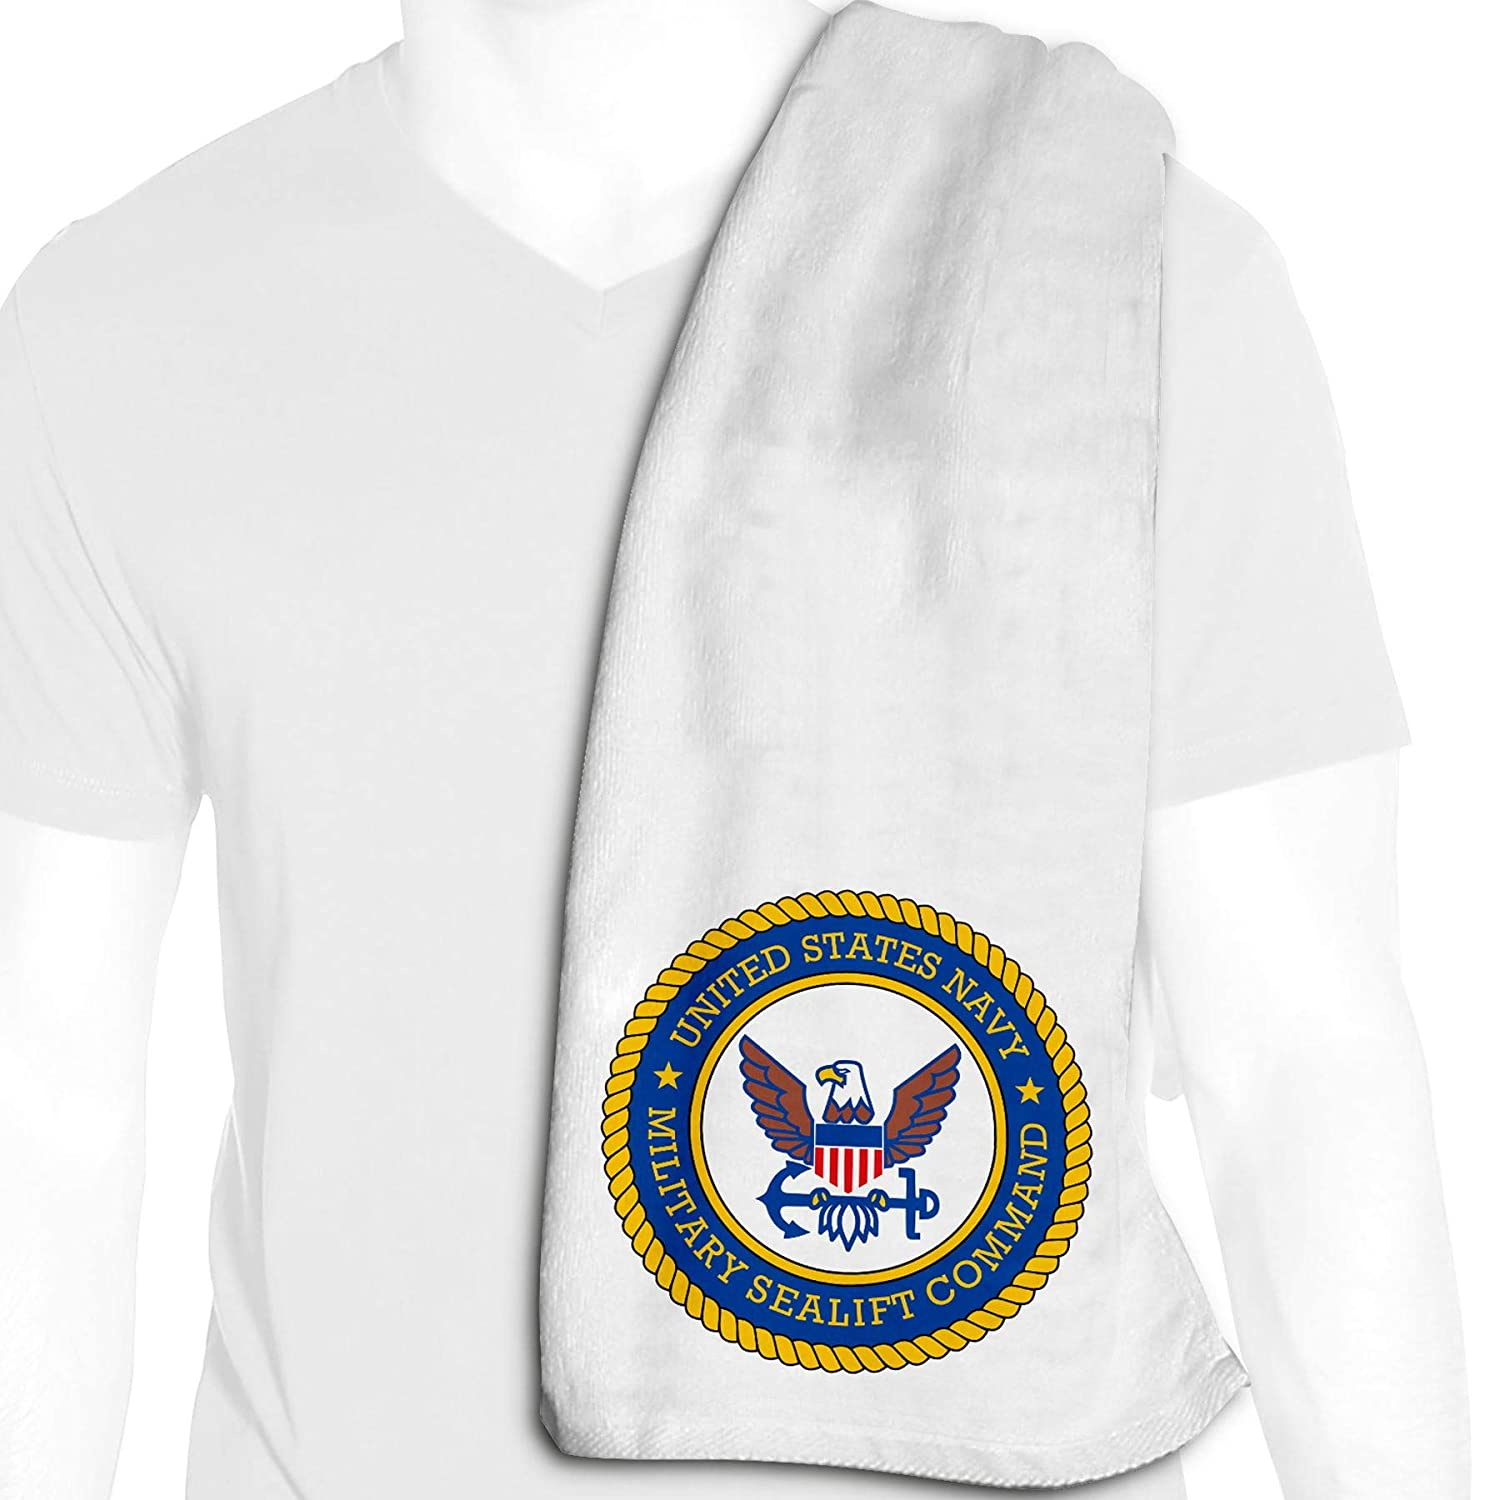 ExpressItBest Microfiber Cooling Towel - 12in x 36in - US Navy Divisions - Many Options